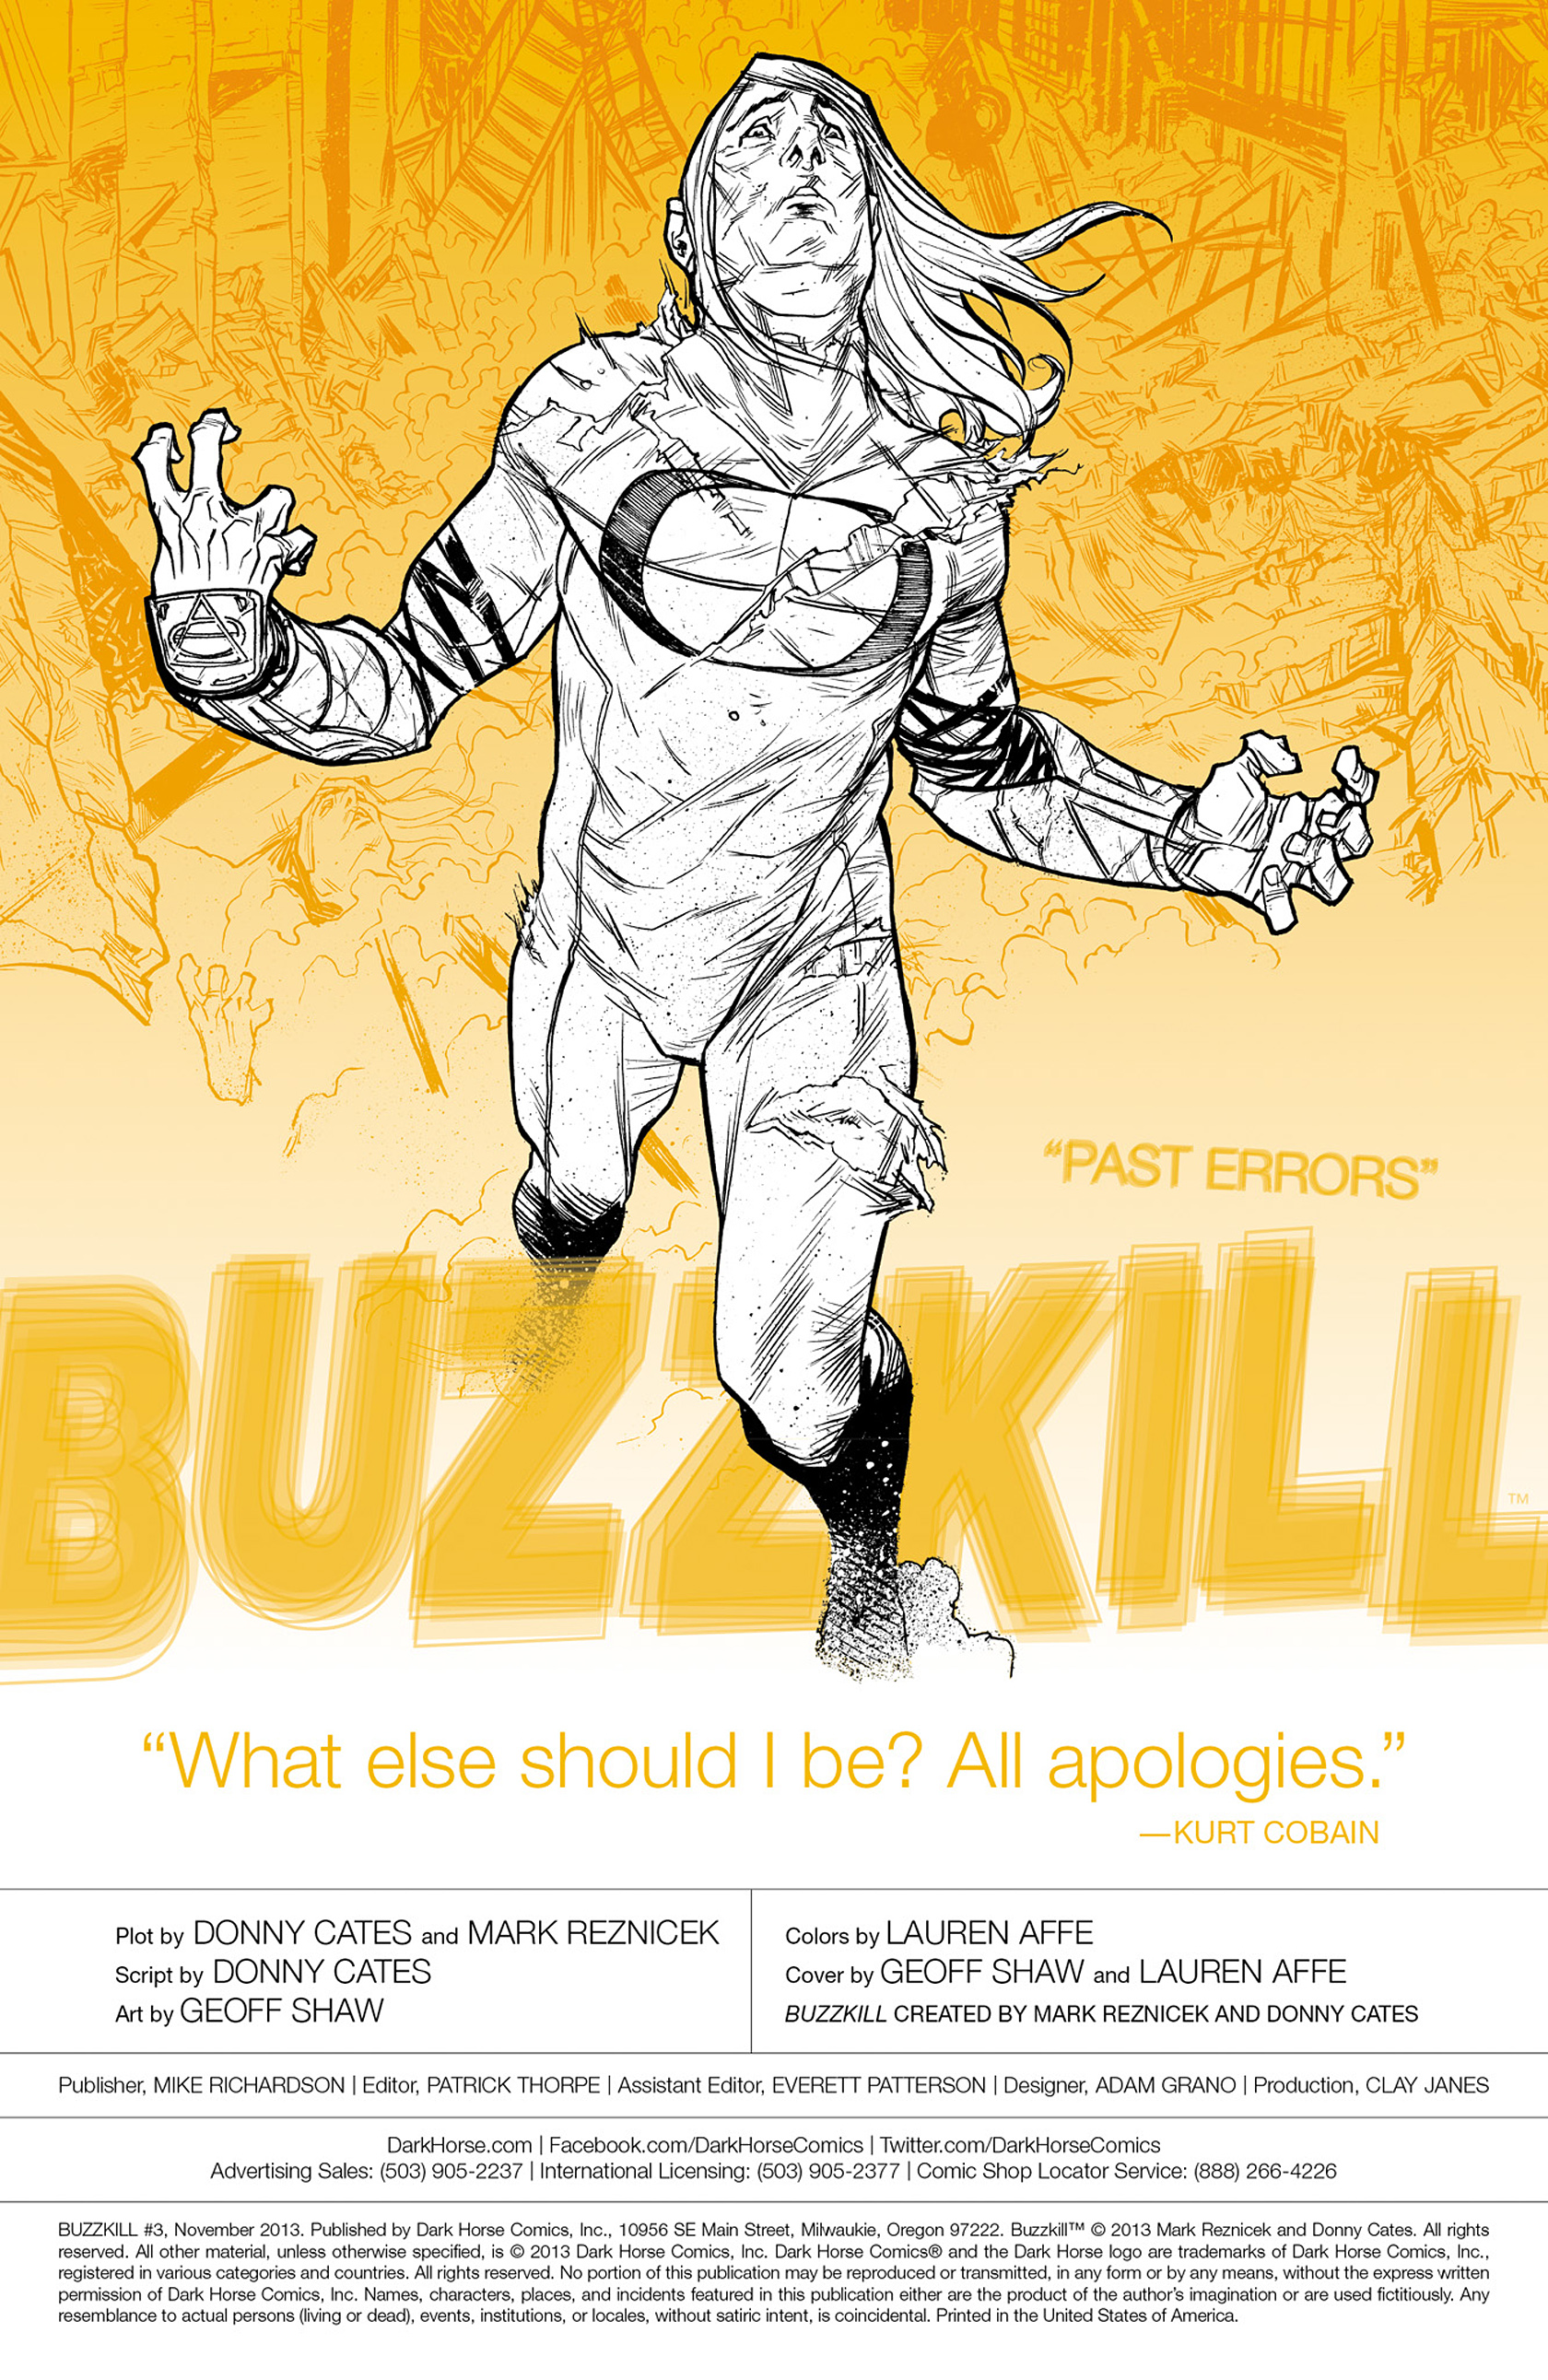 Read online Buzzkill comic -  Issue #3 - 2